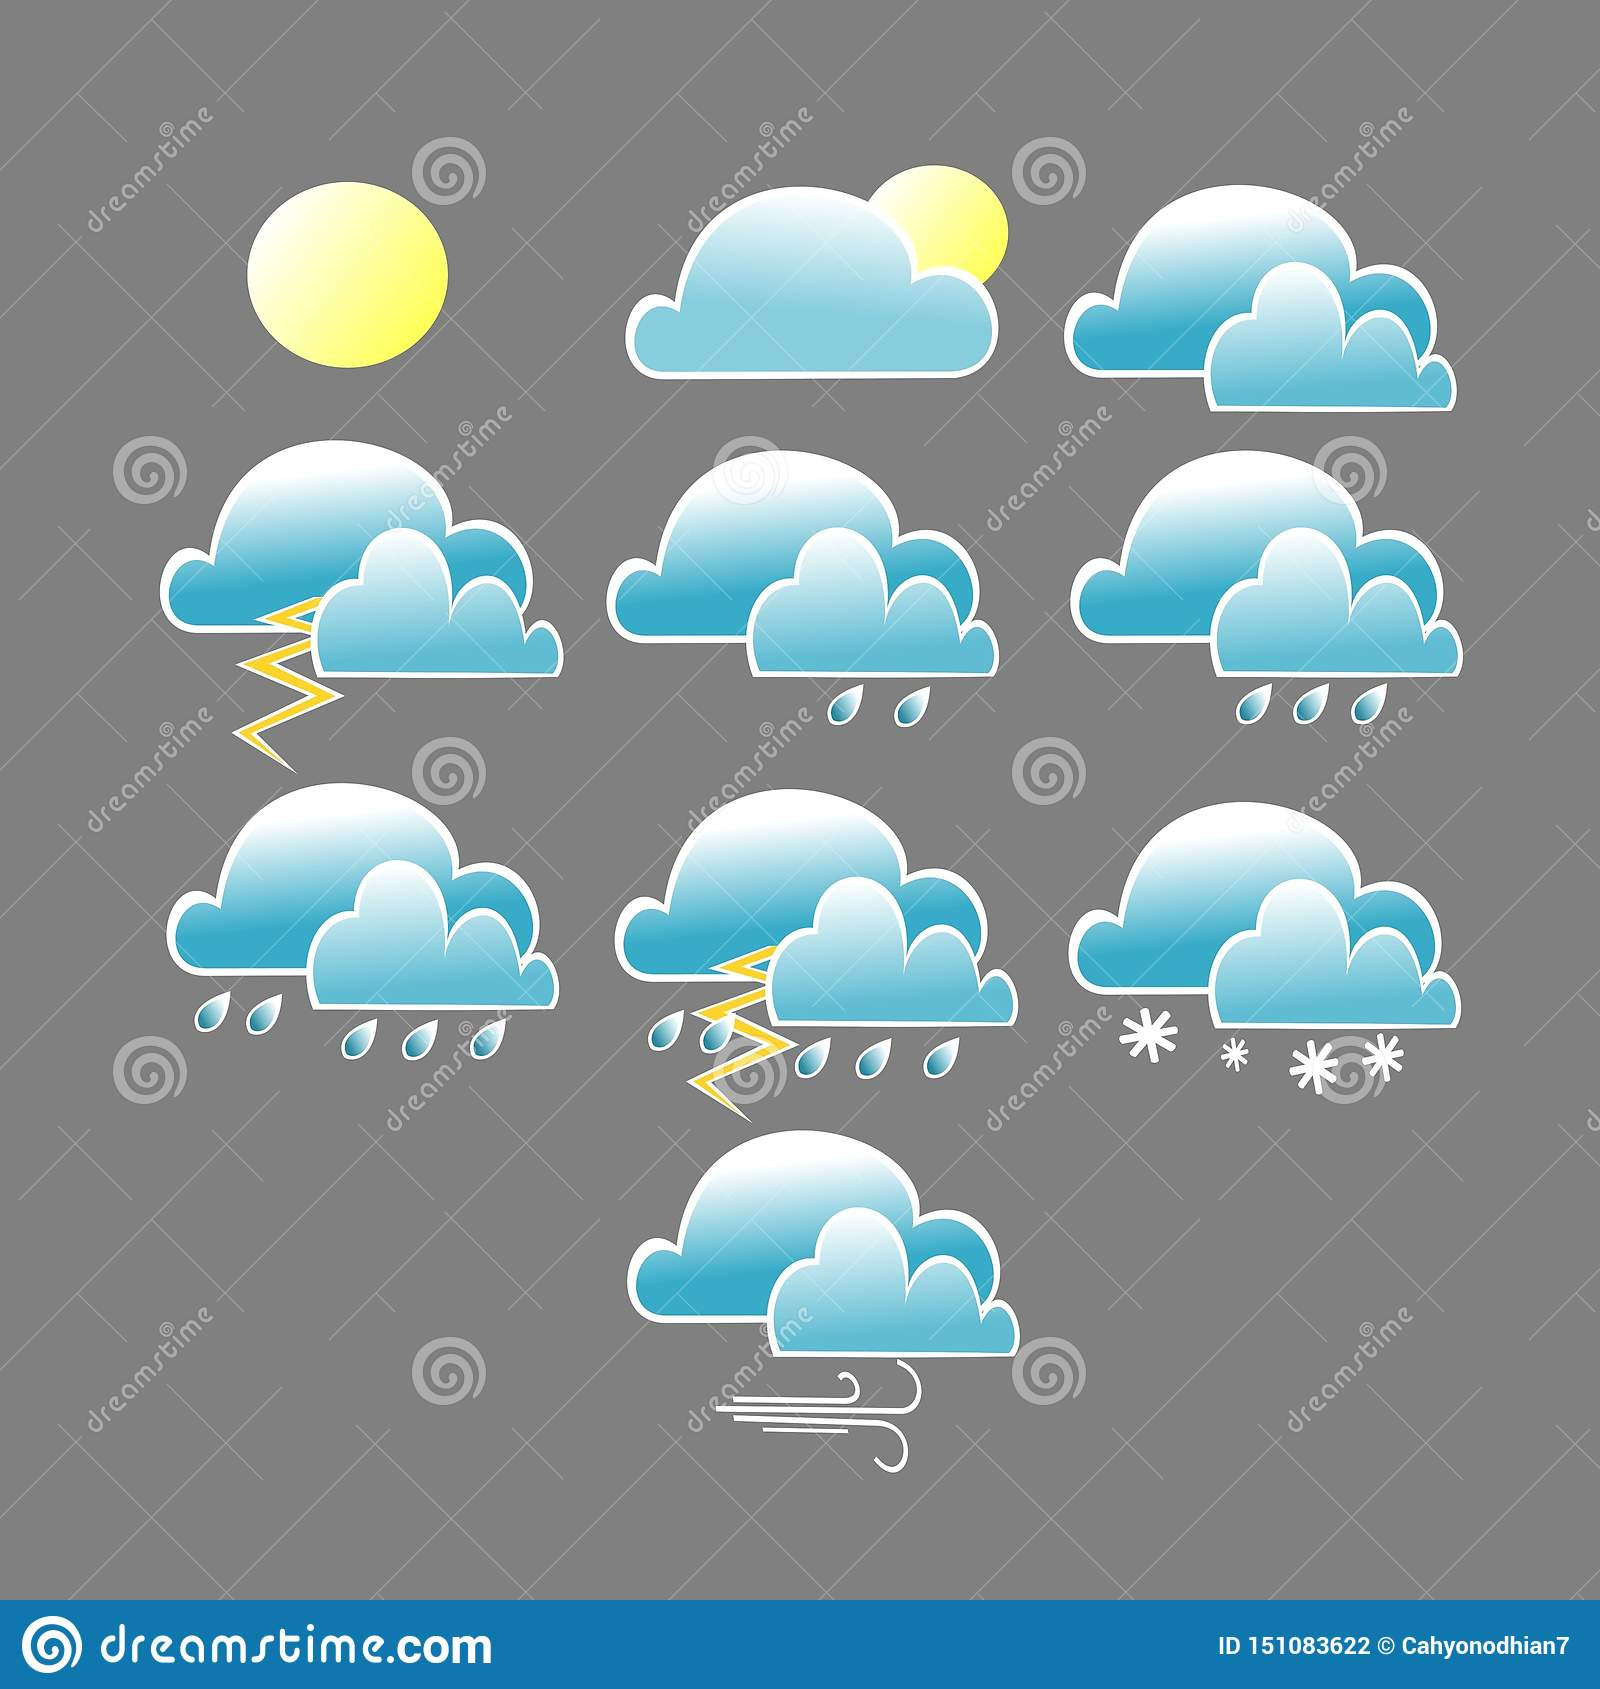 Various weather conditions icon with blue cloud